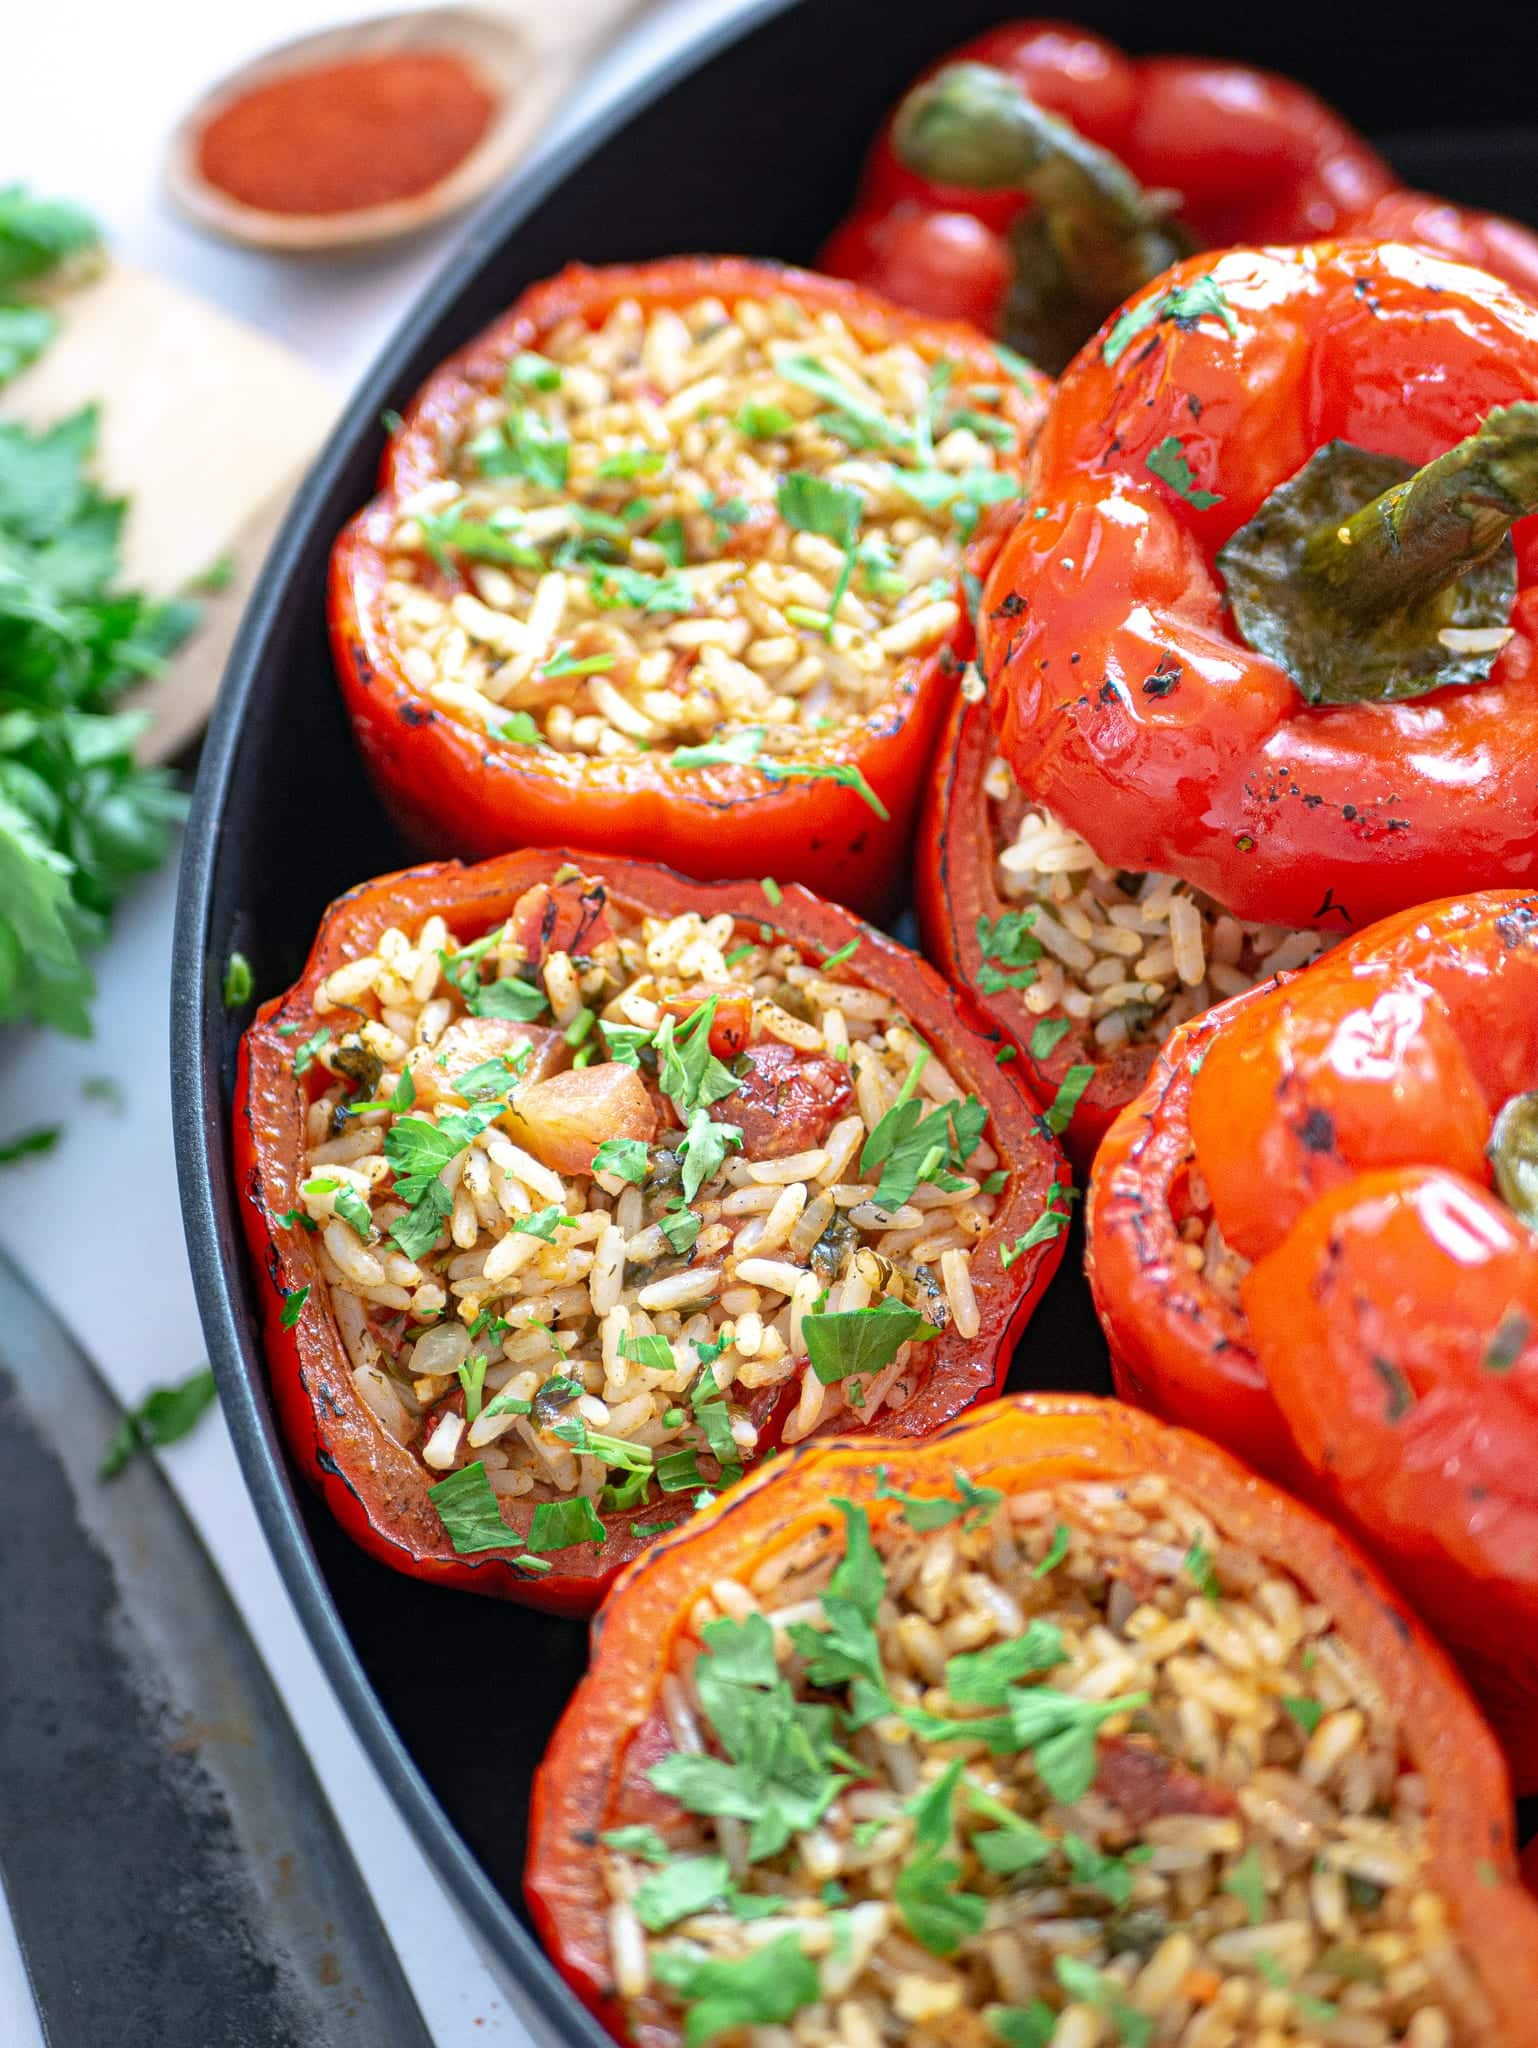 VEGAN STUFFED BELL PEPPERS WITH RICE FRONT